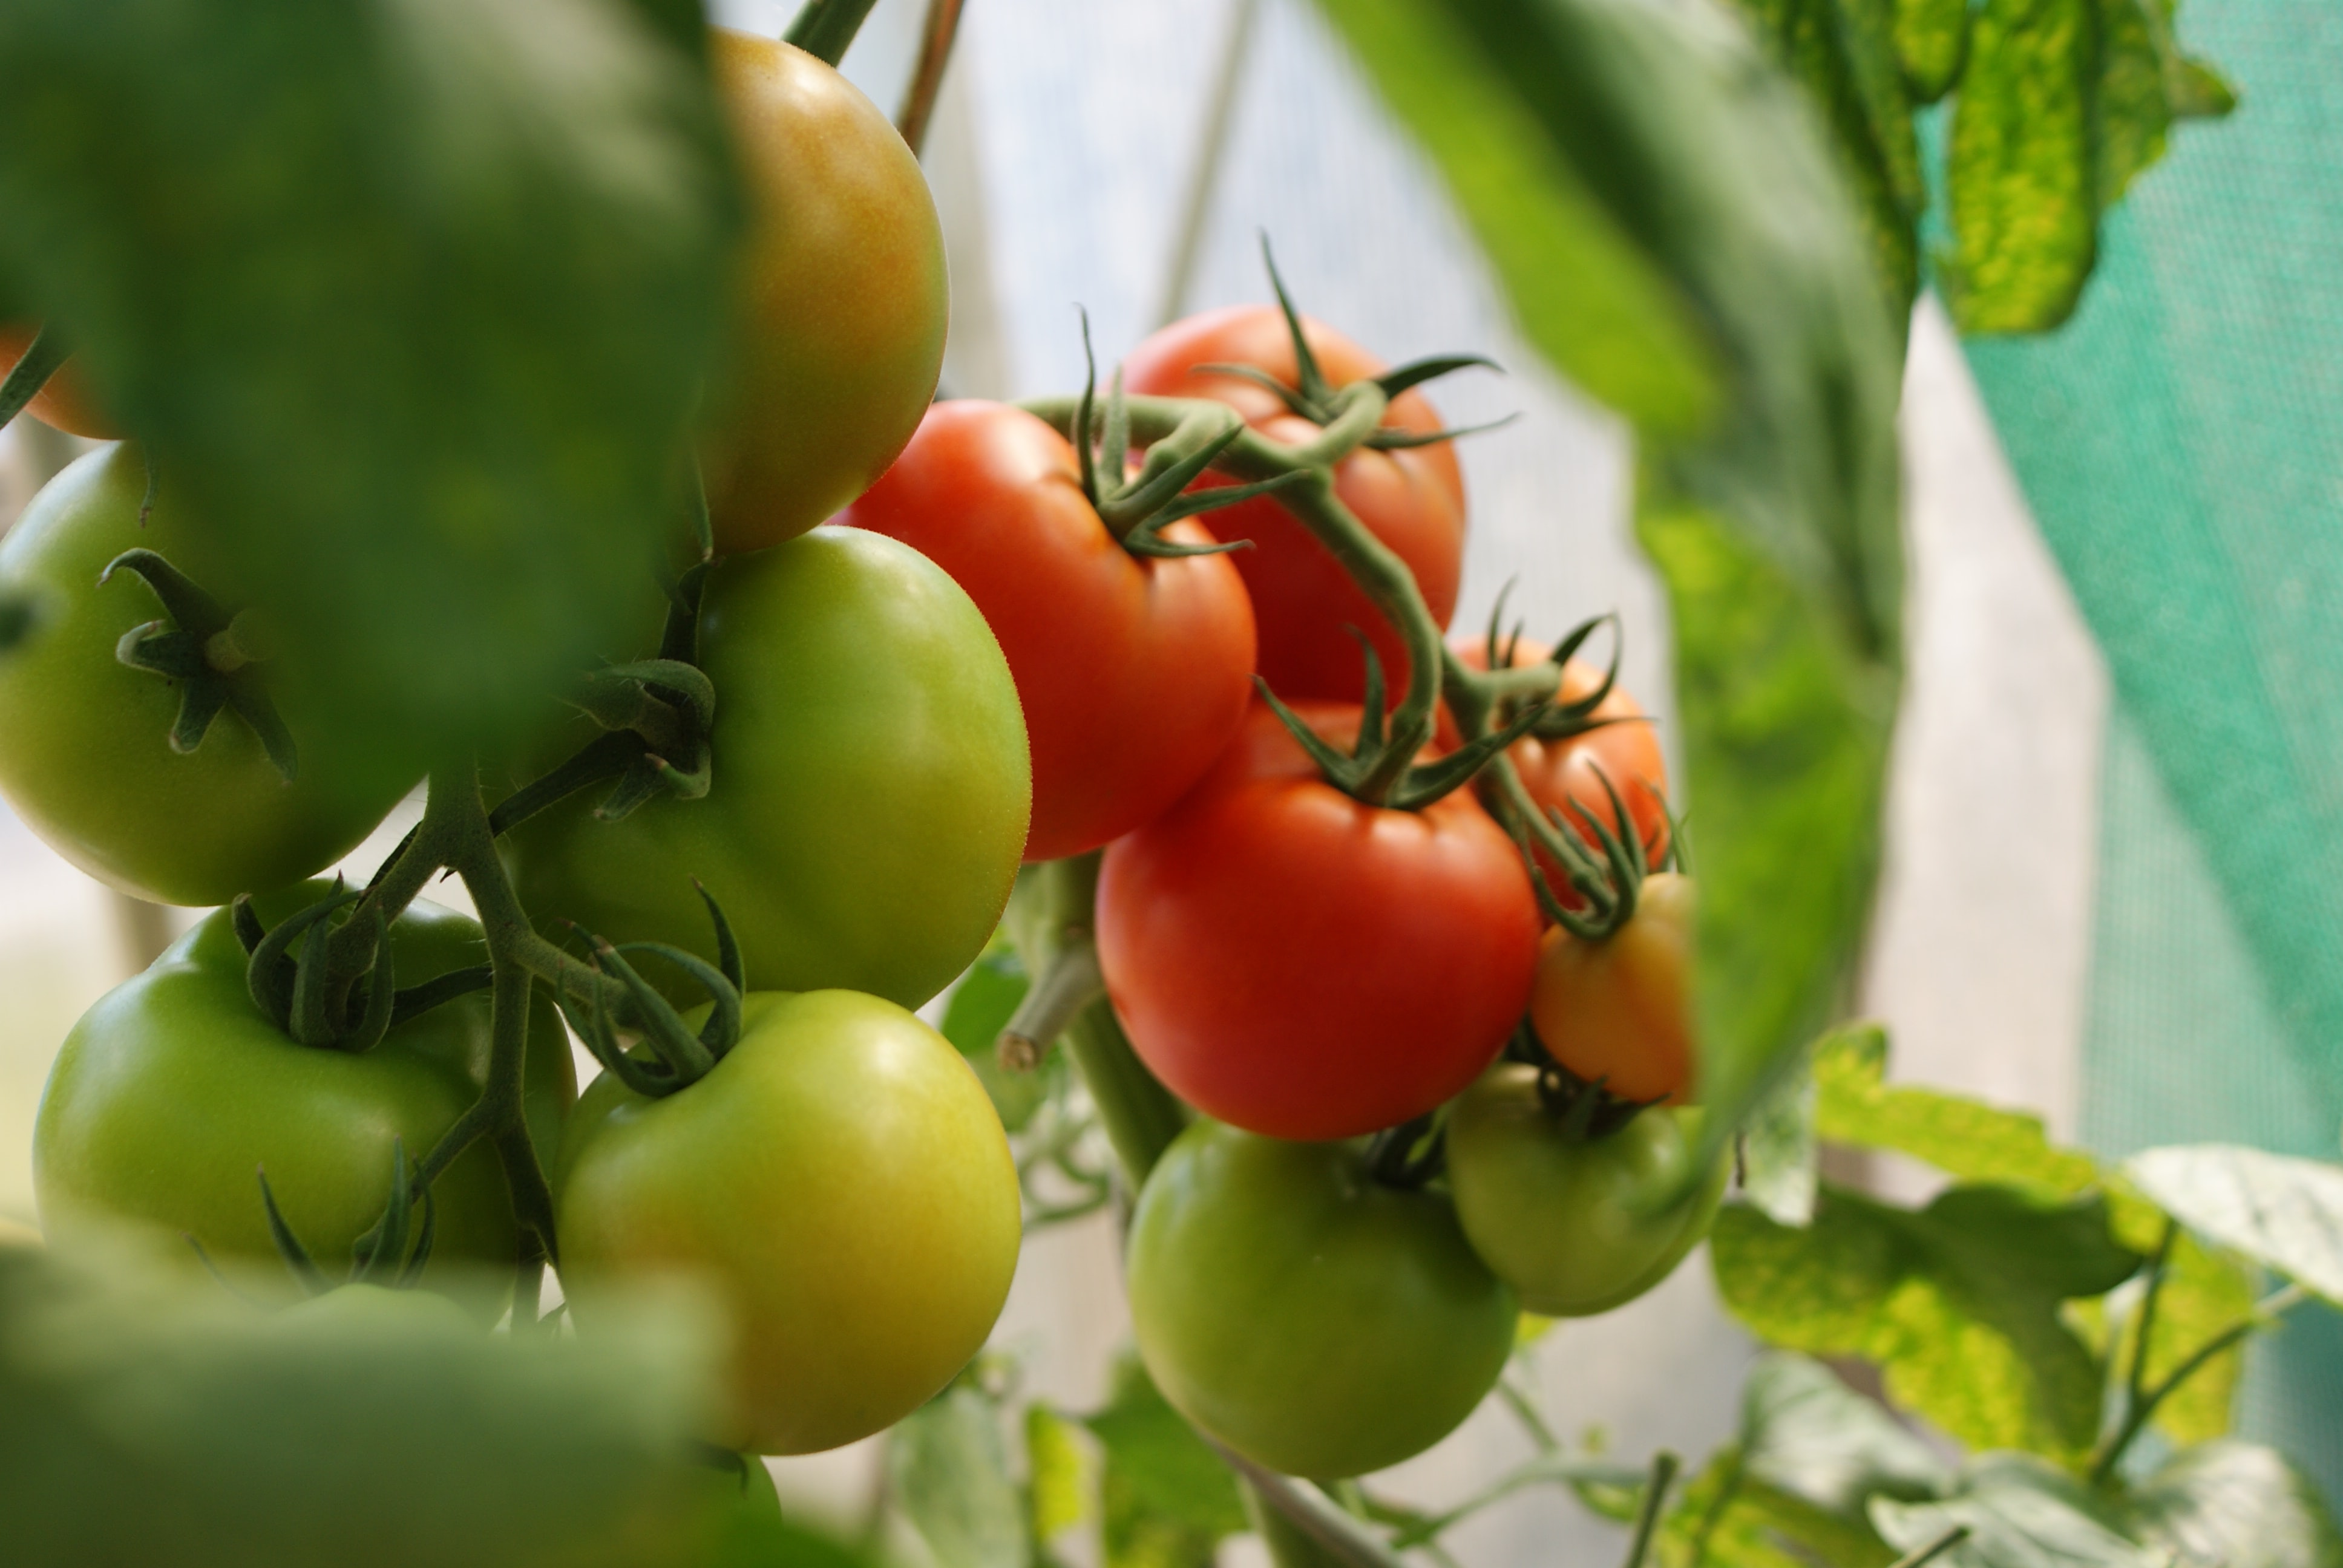 Tomatoes ripening on the vine. (Dani California)